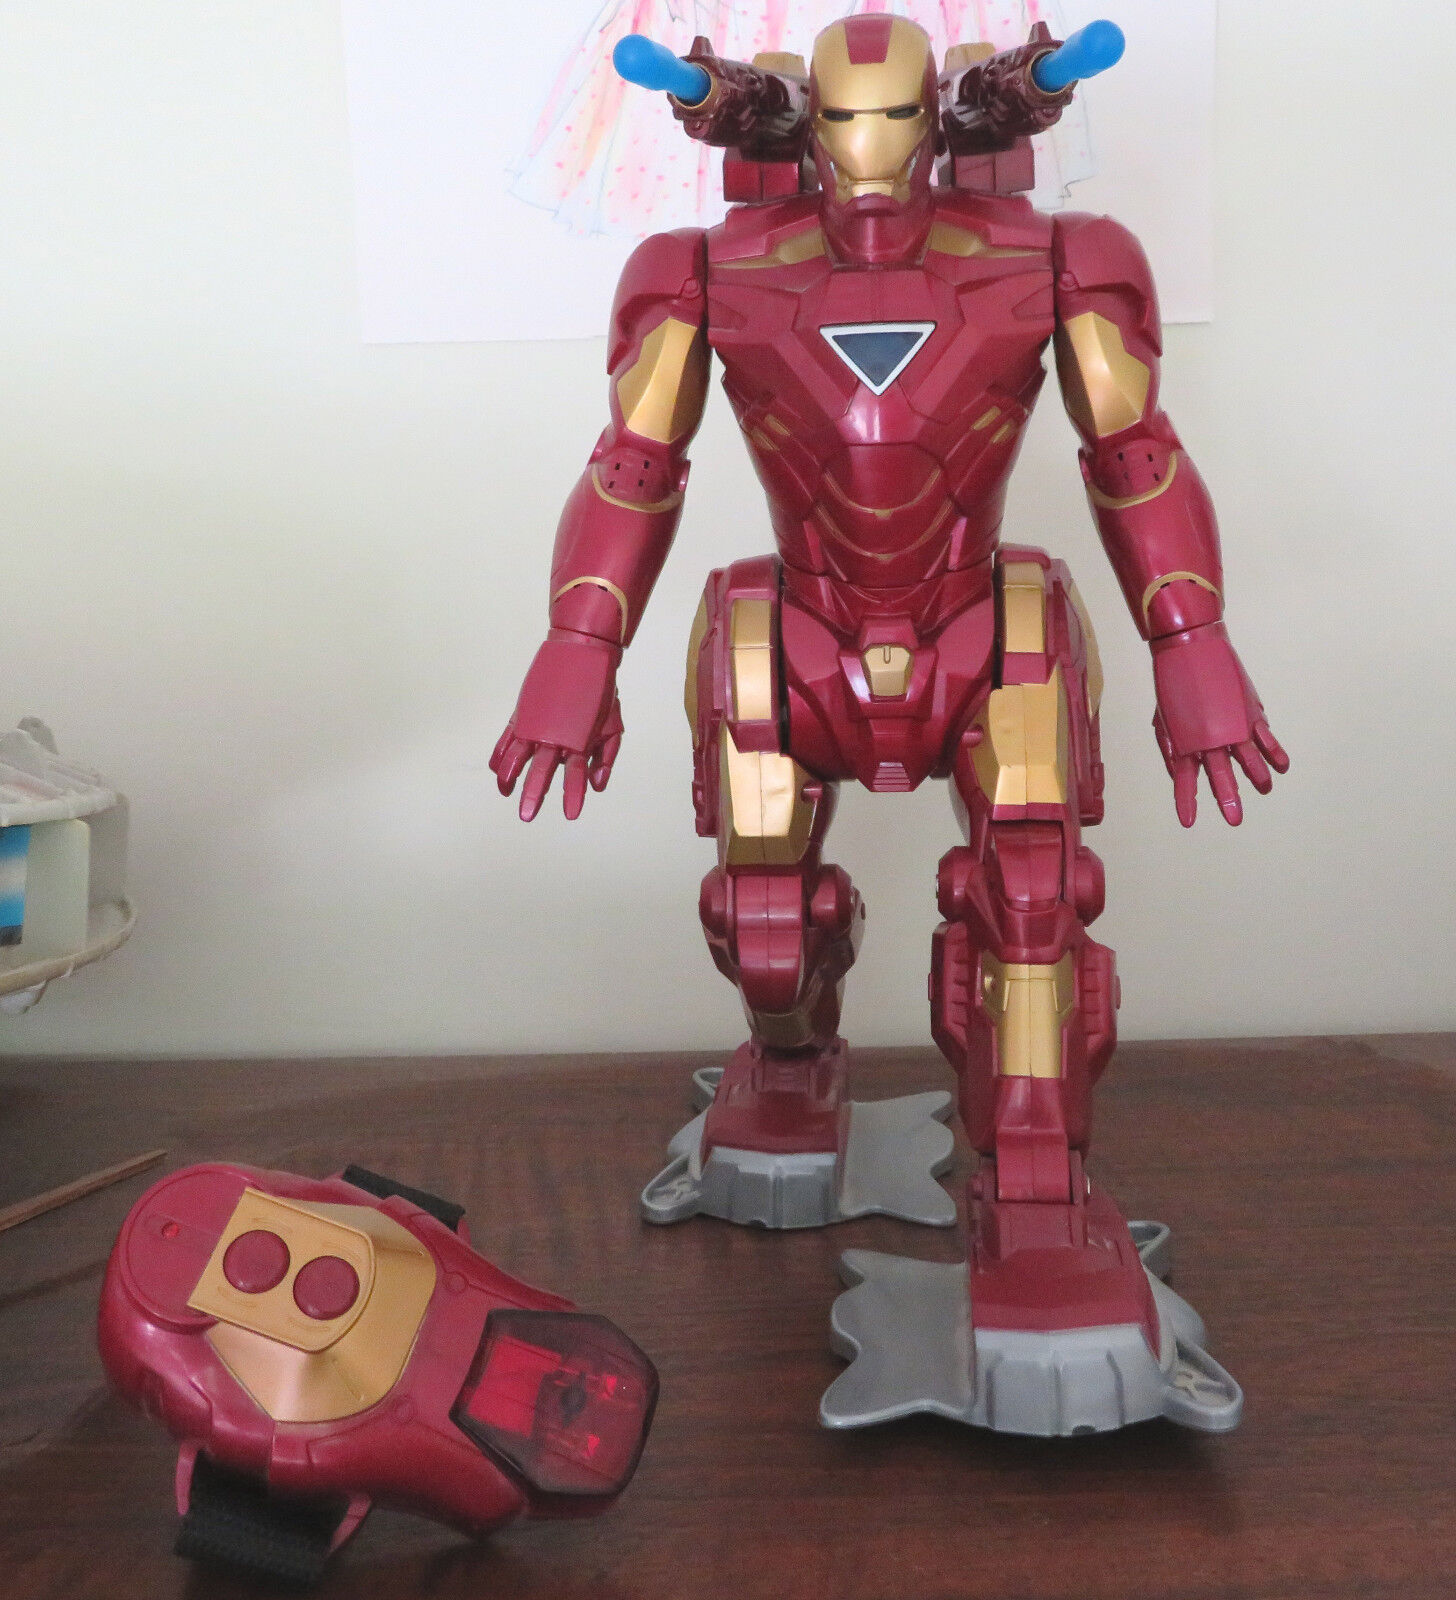 2009 Hasbro Marvel Iron Man Walking Talking Missiles Remote Robot  EXCELLENT